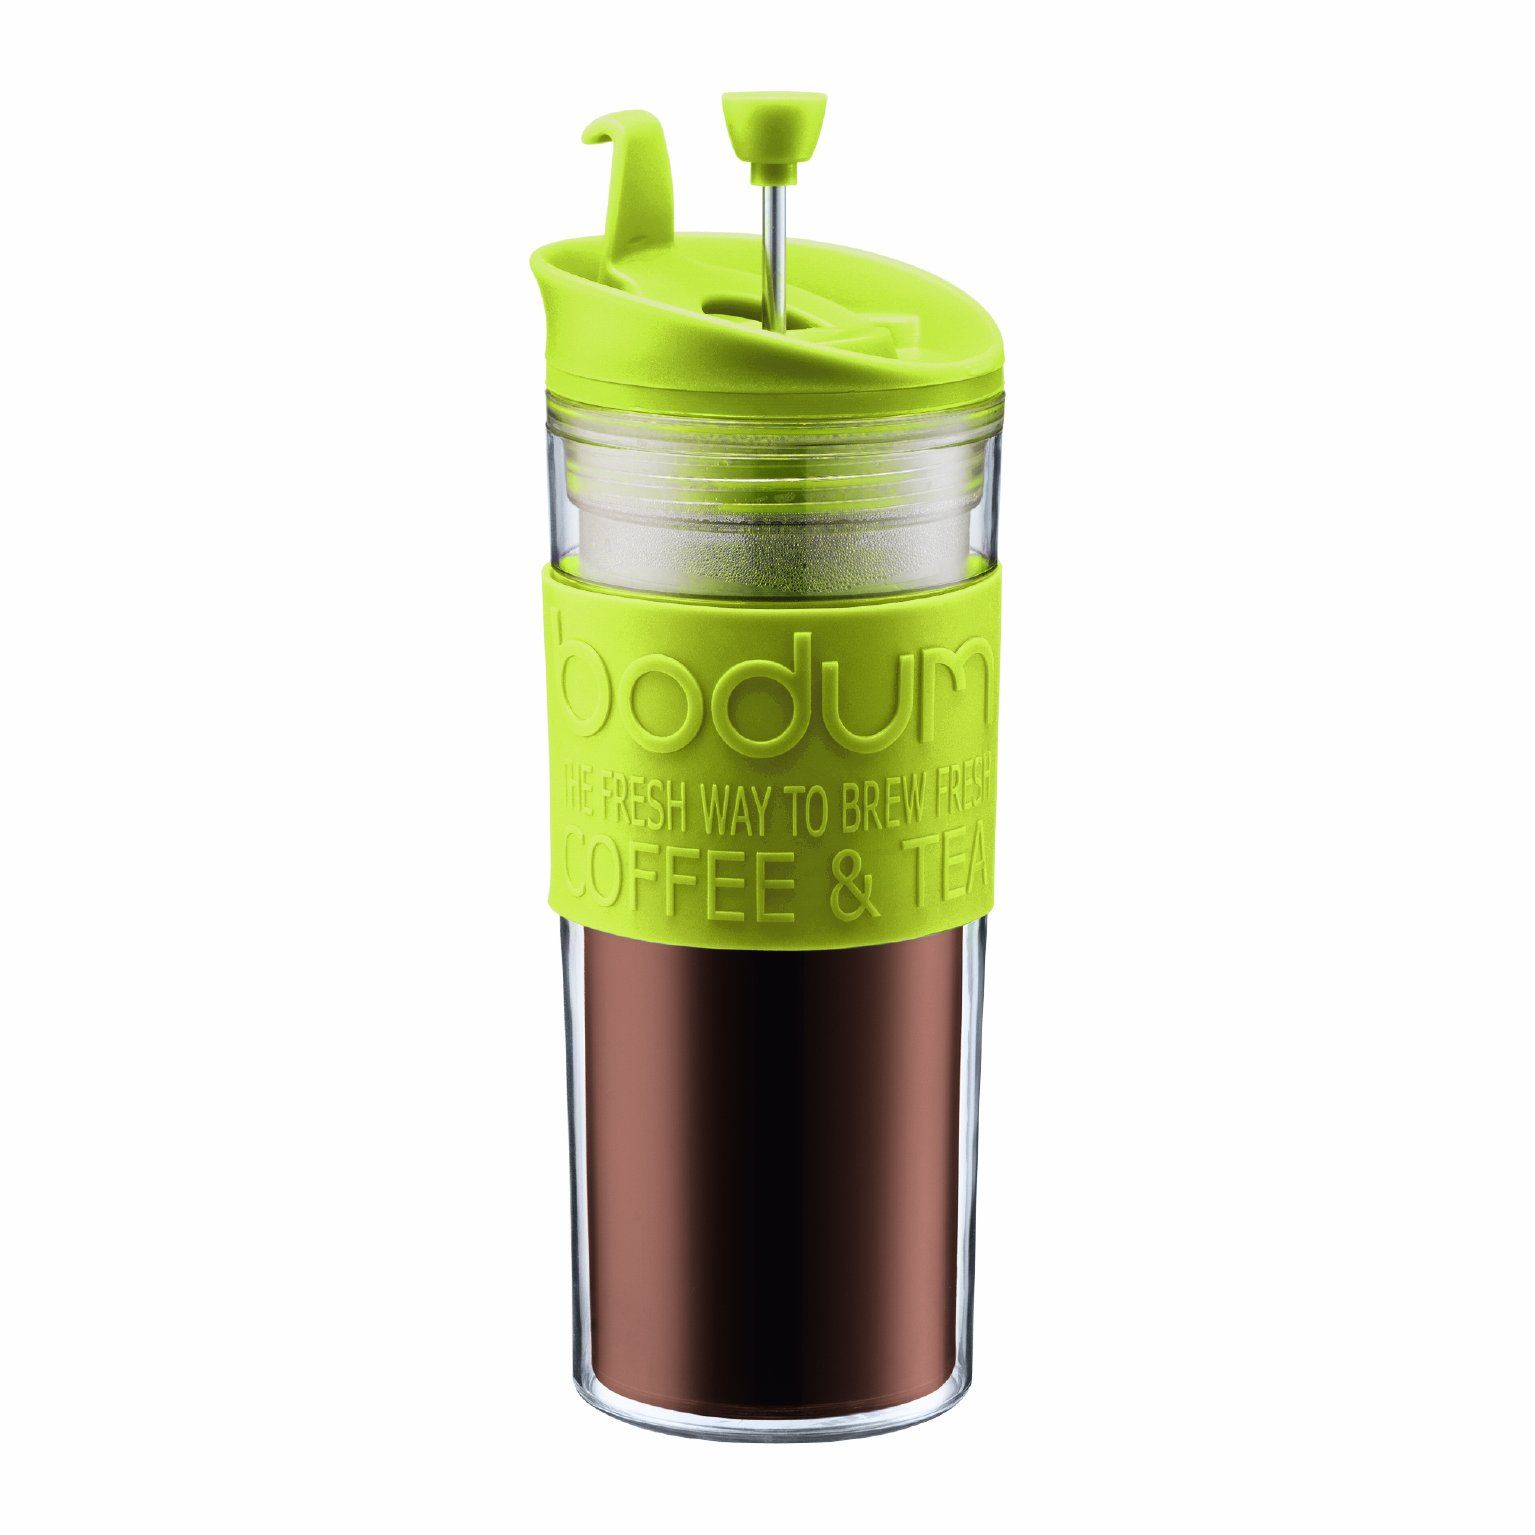 0.45-Lit Bodum Insulated Stainless-Steel Travel French Press Coffee and Tea Mug